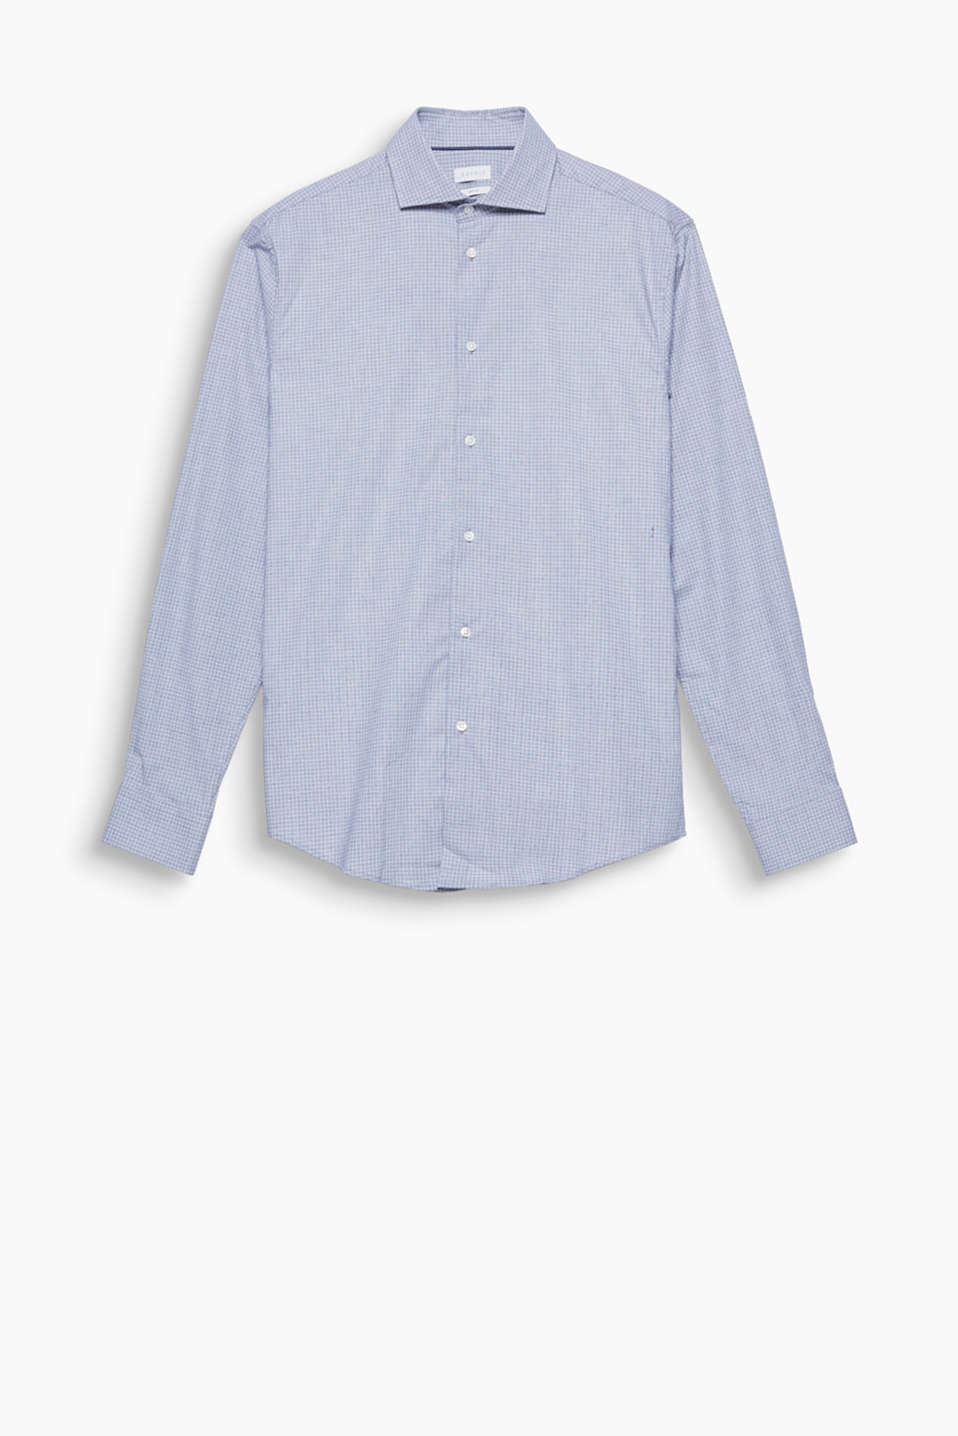 The fine, mini check pattern and distinctive shark collar make this shirt a fashionable highlight!